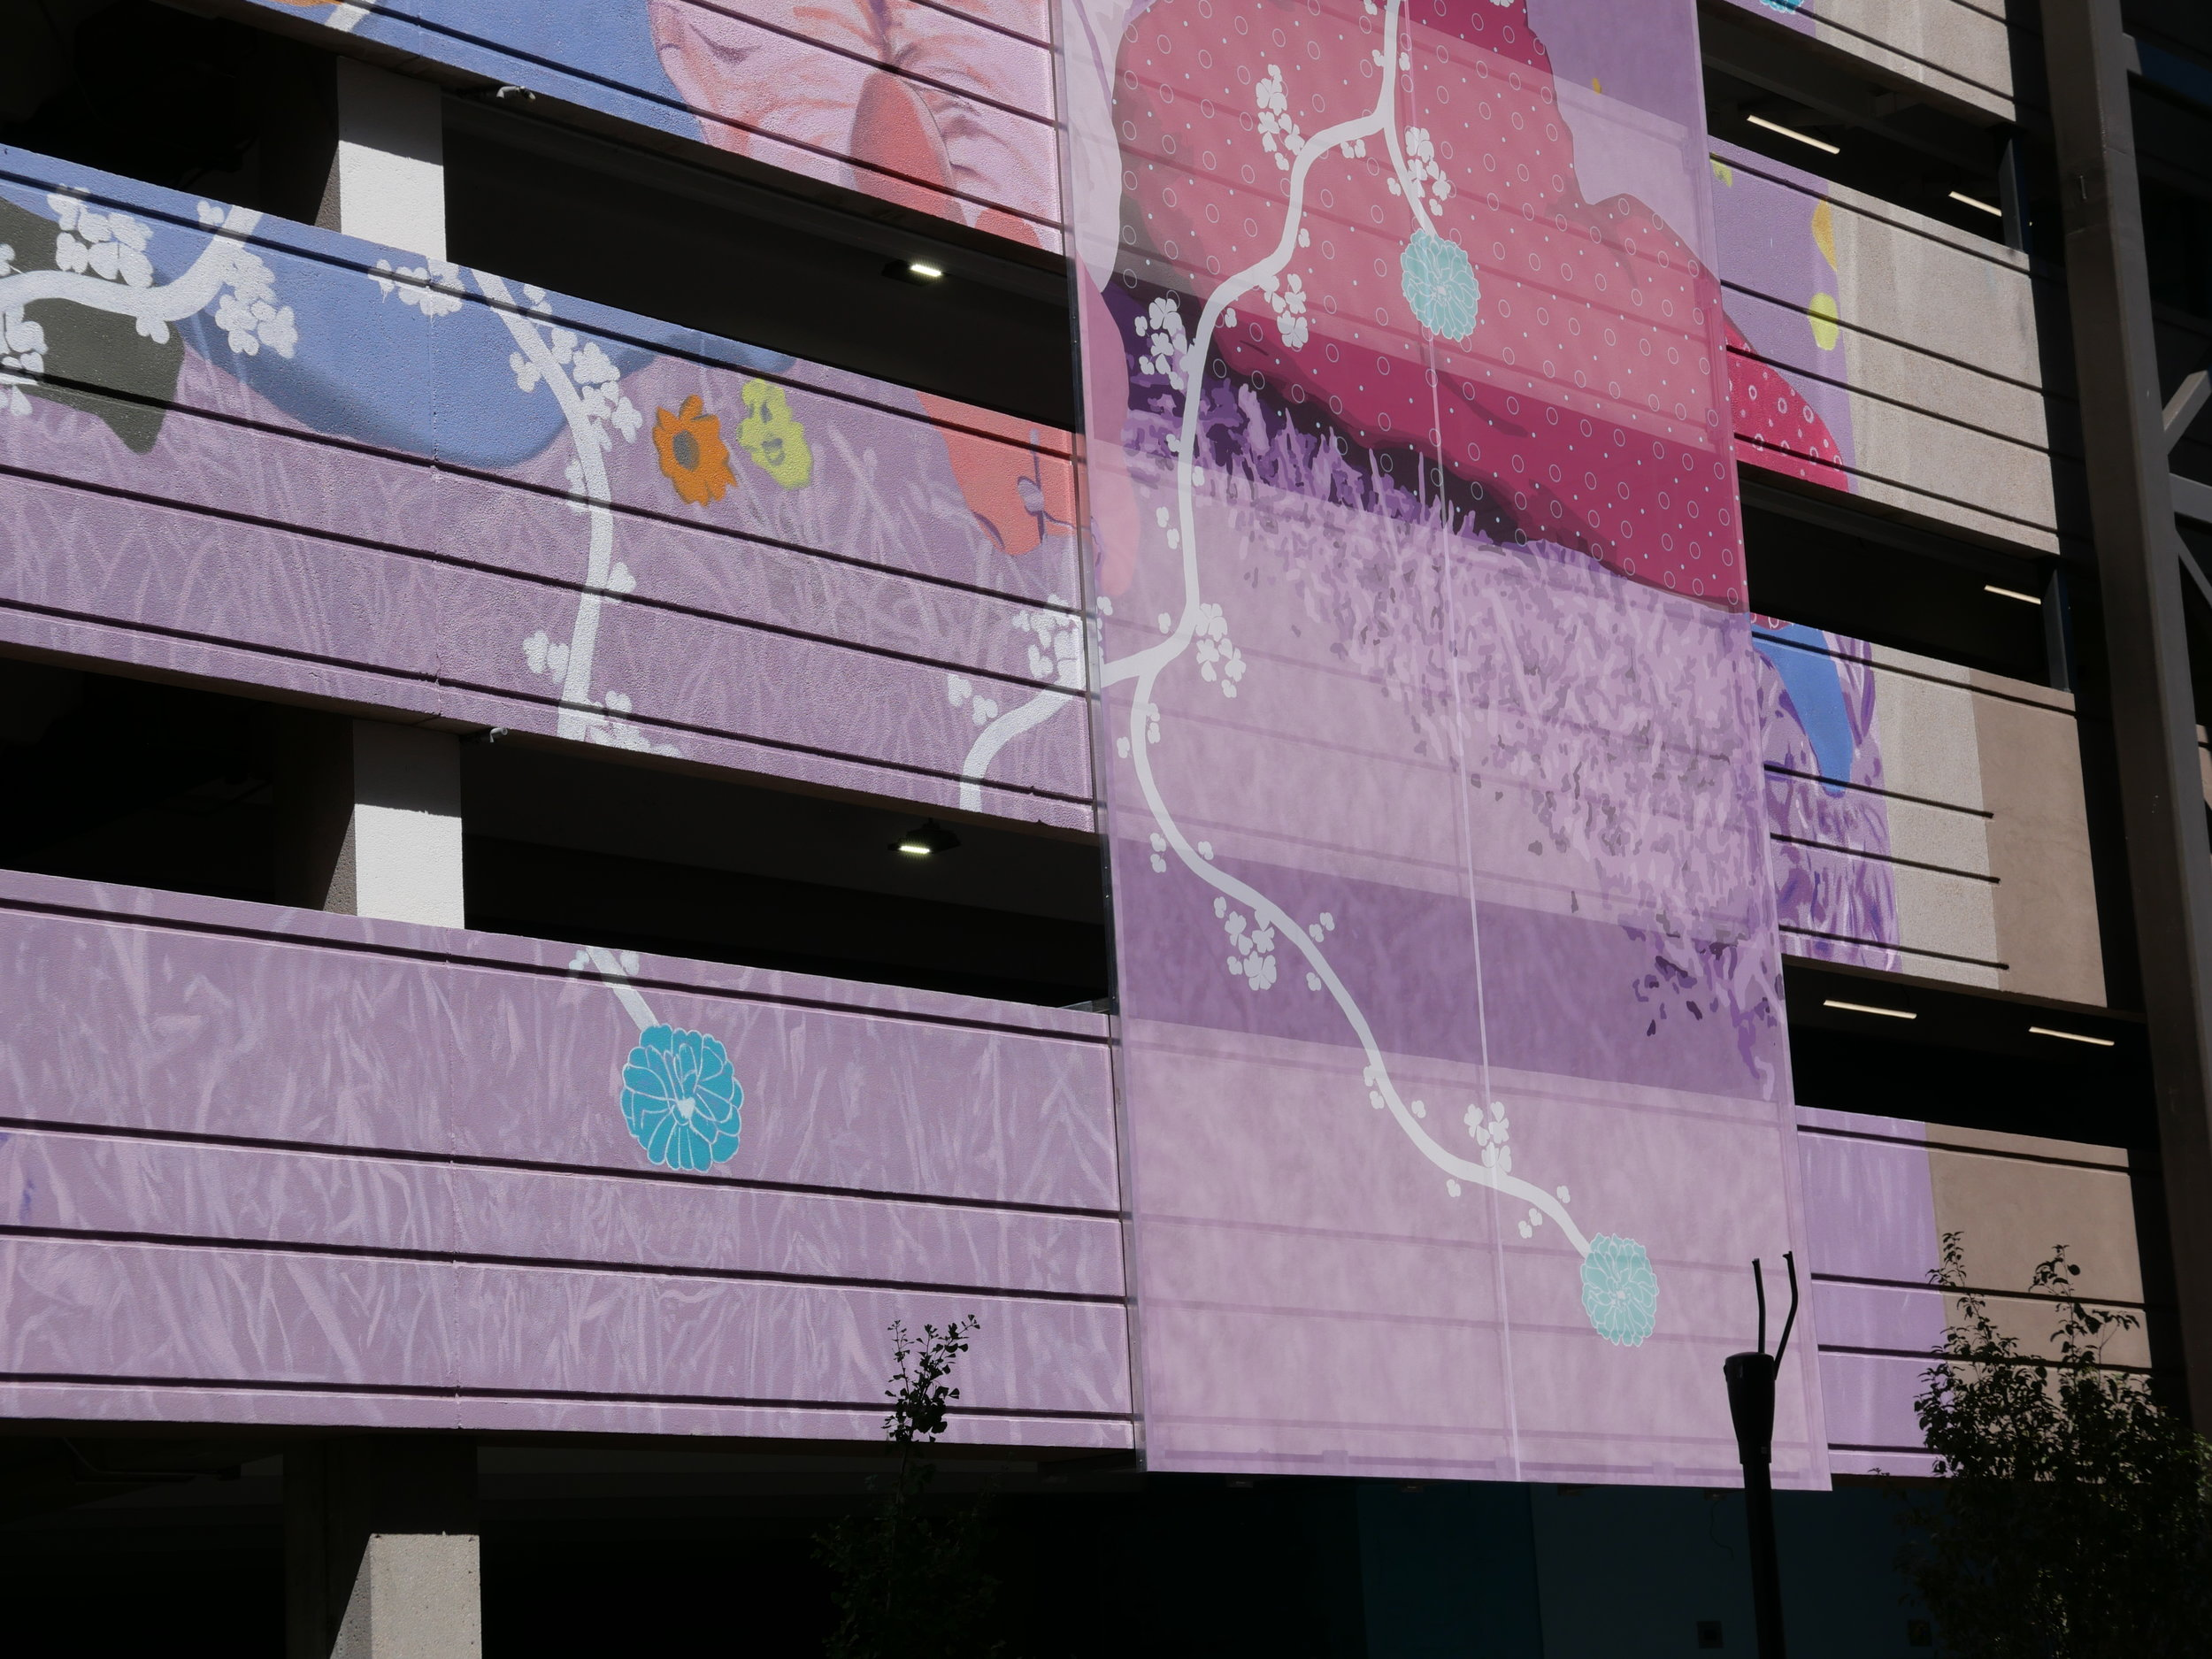 9th and Colorado_daisy patton_public art services_j grant projects_14.JPG